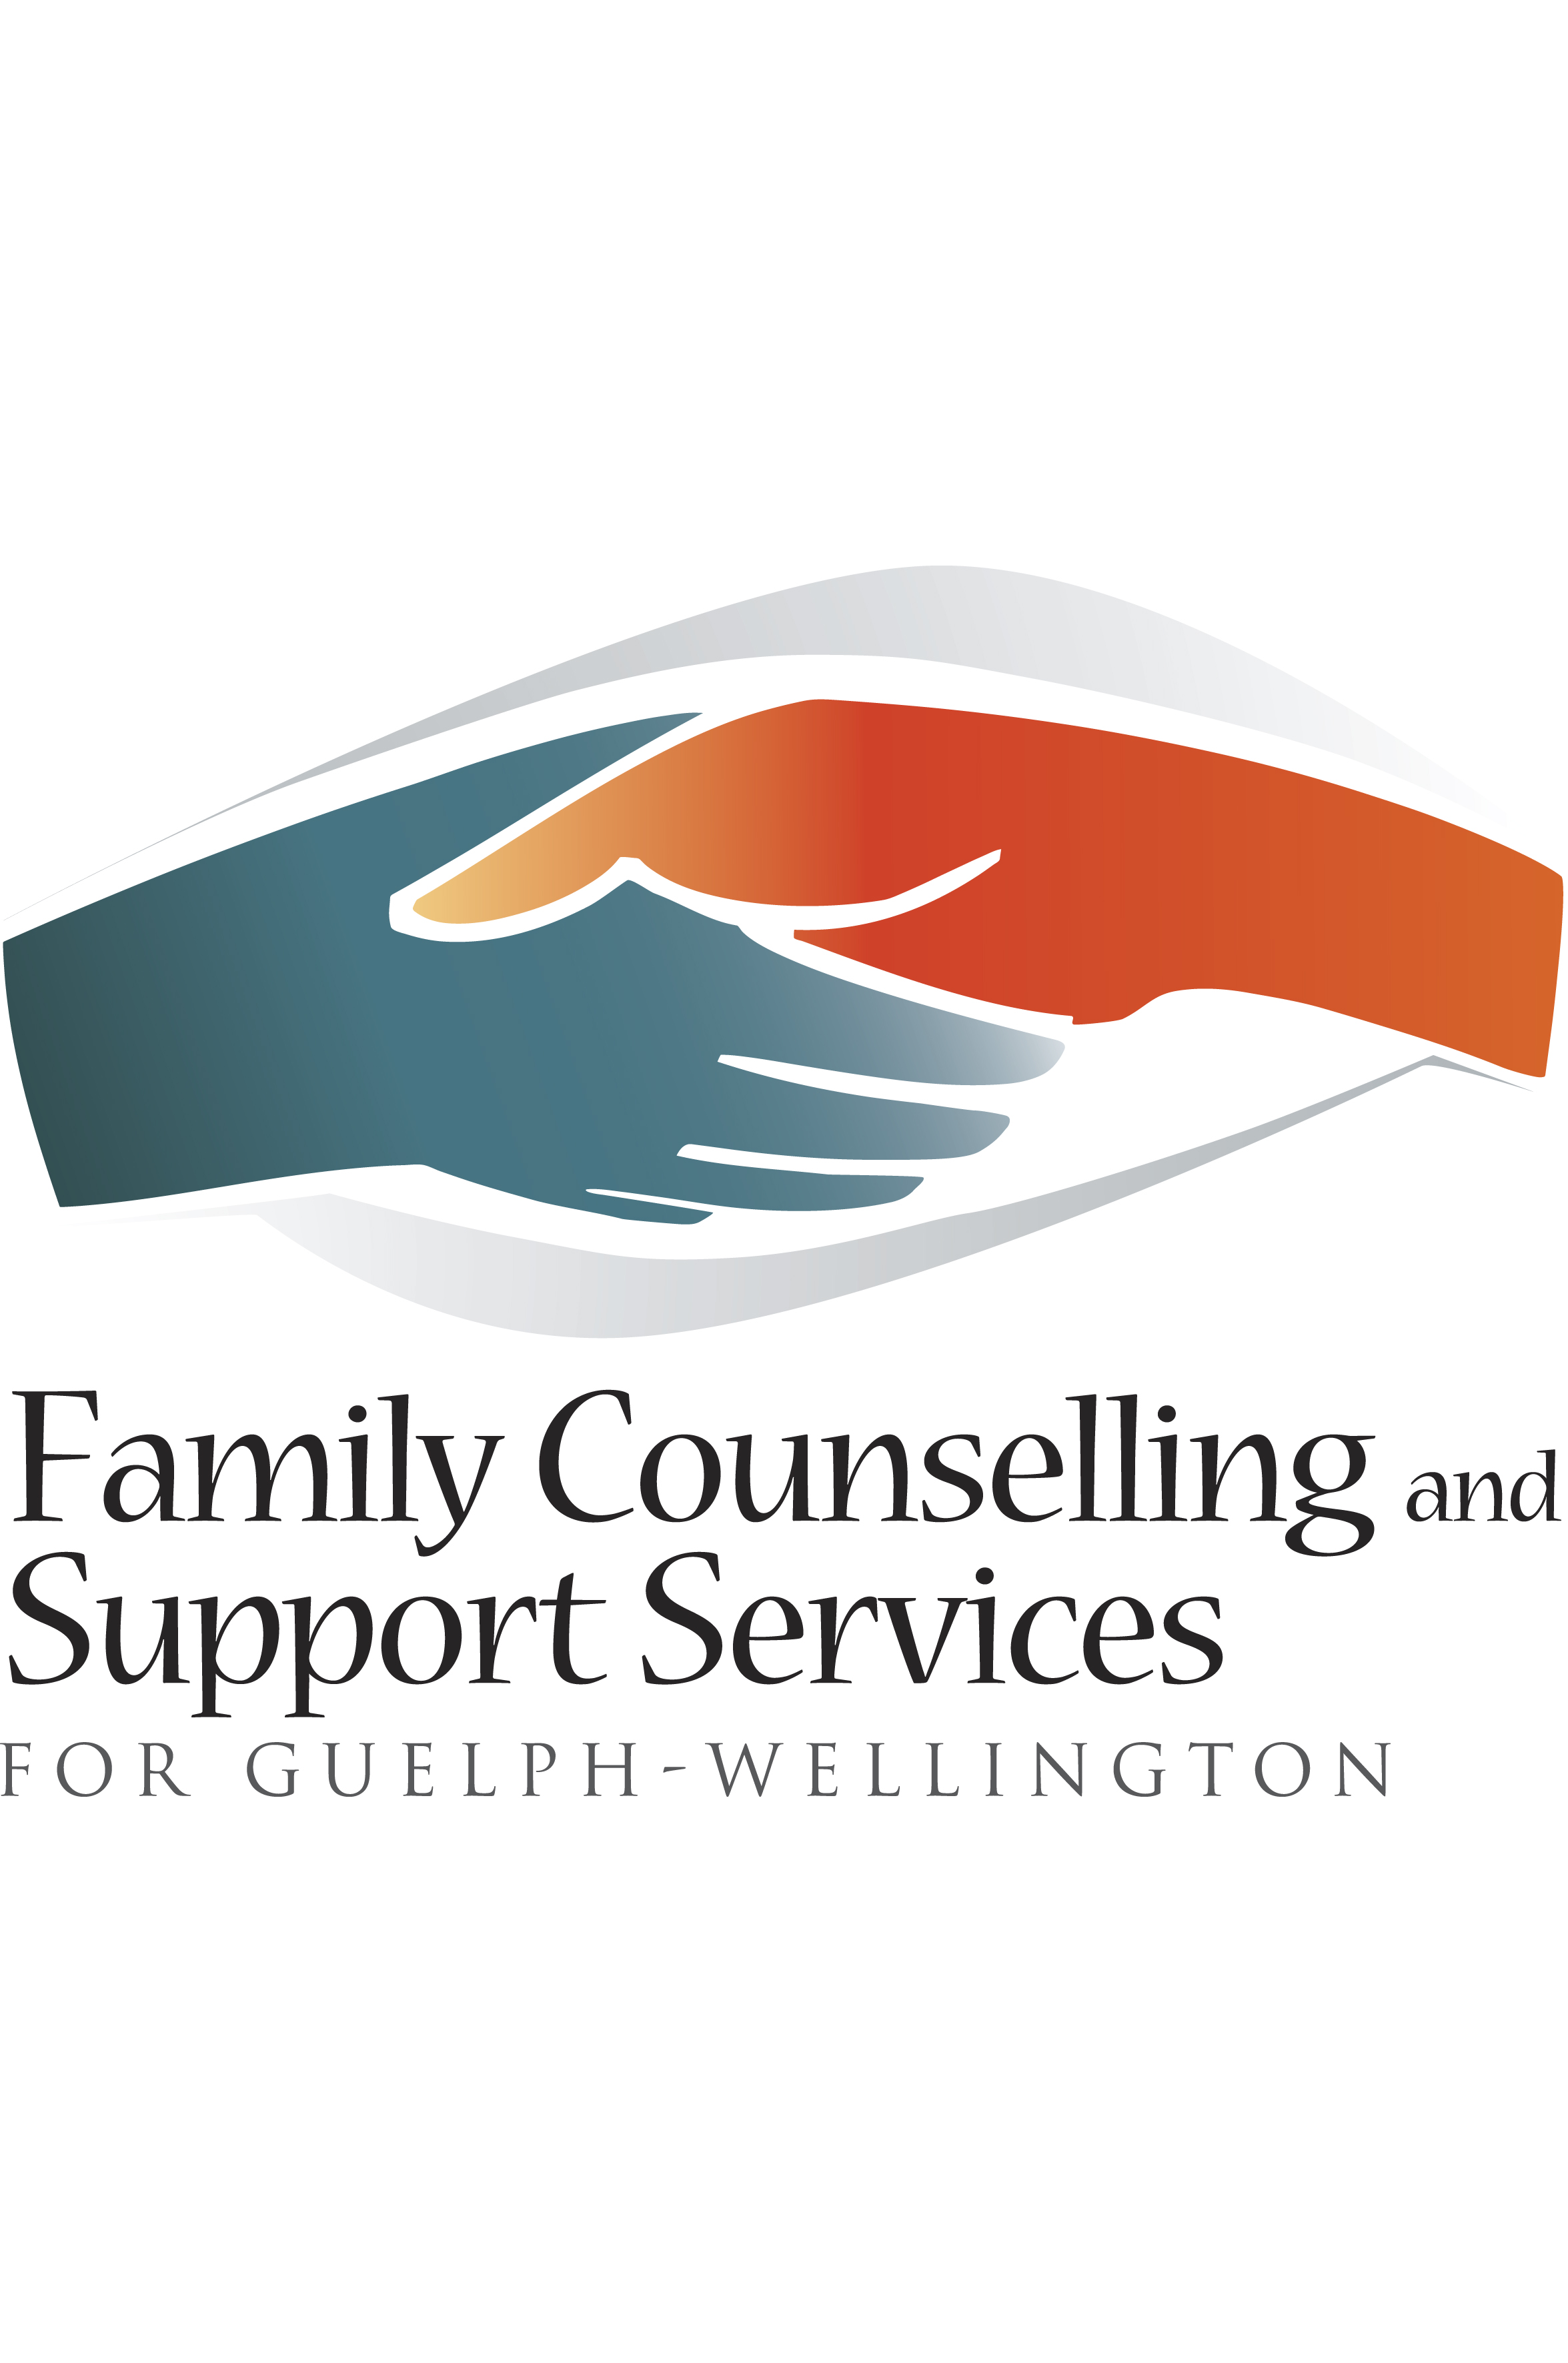 Family Counseling and Support Services of Guelph and Wellington logo